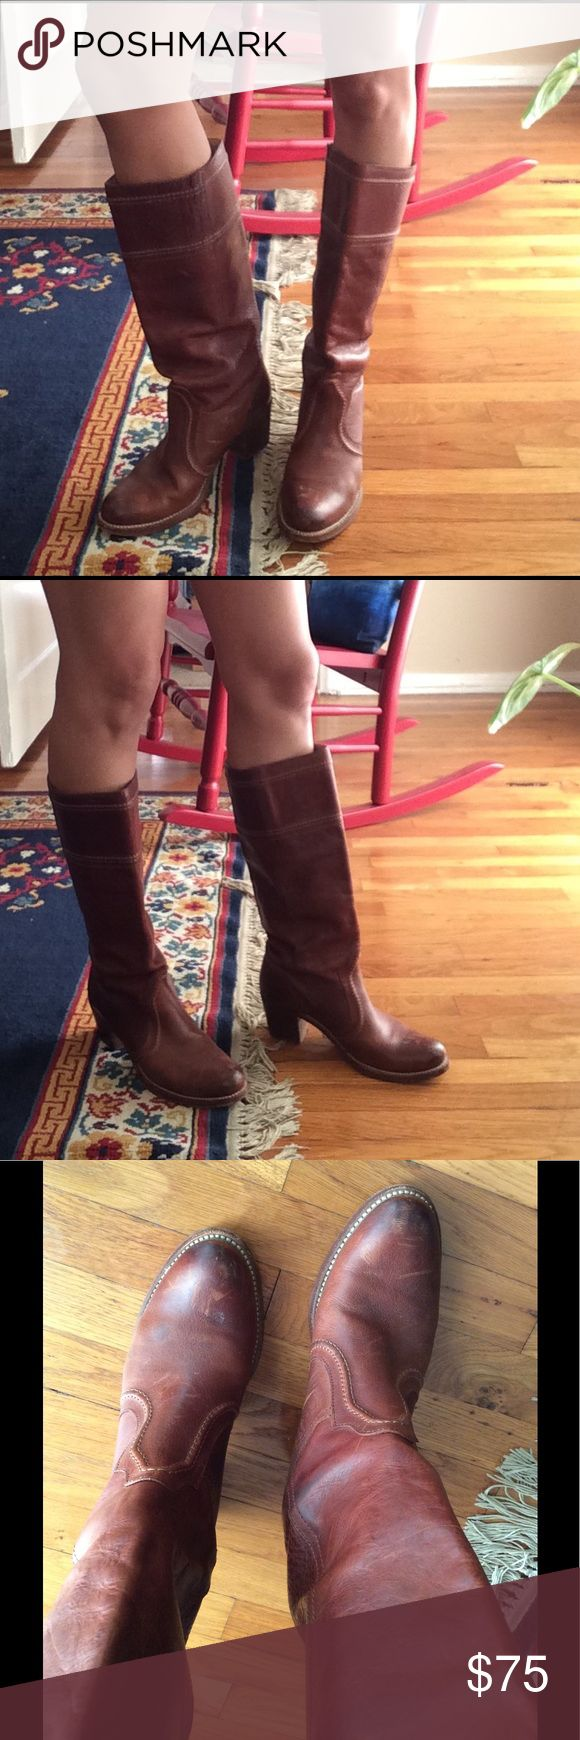 Frye Riding Boots Brown leather Frye Riding Boots. Frye Shoes Heeled Boots